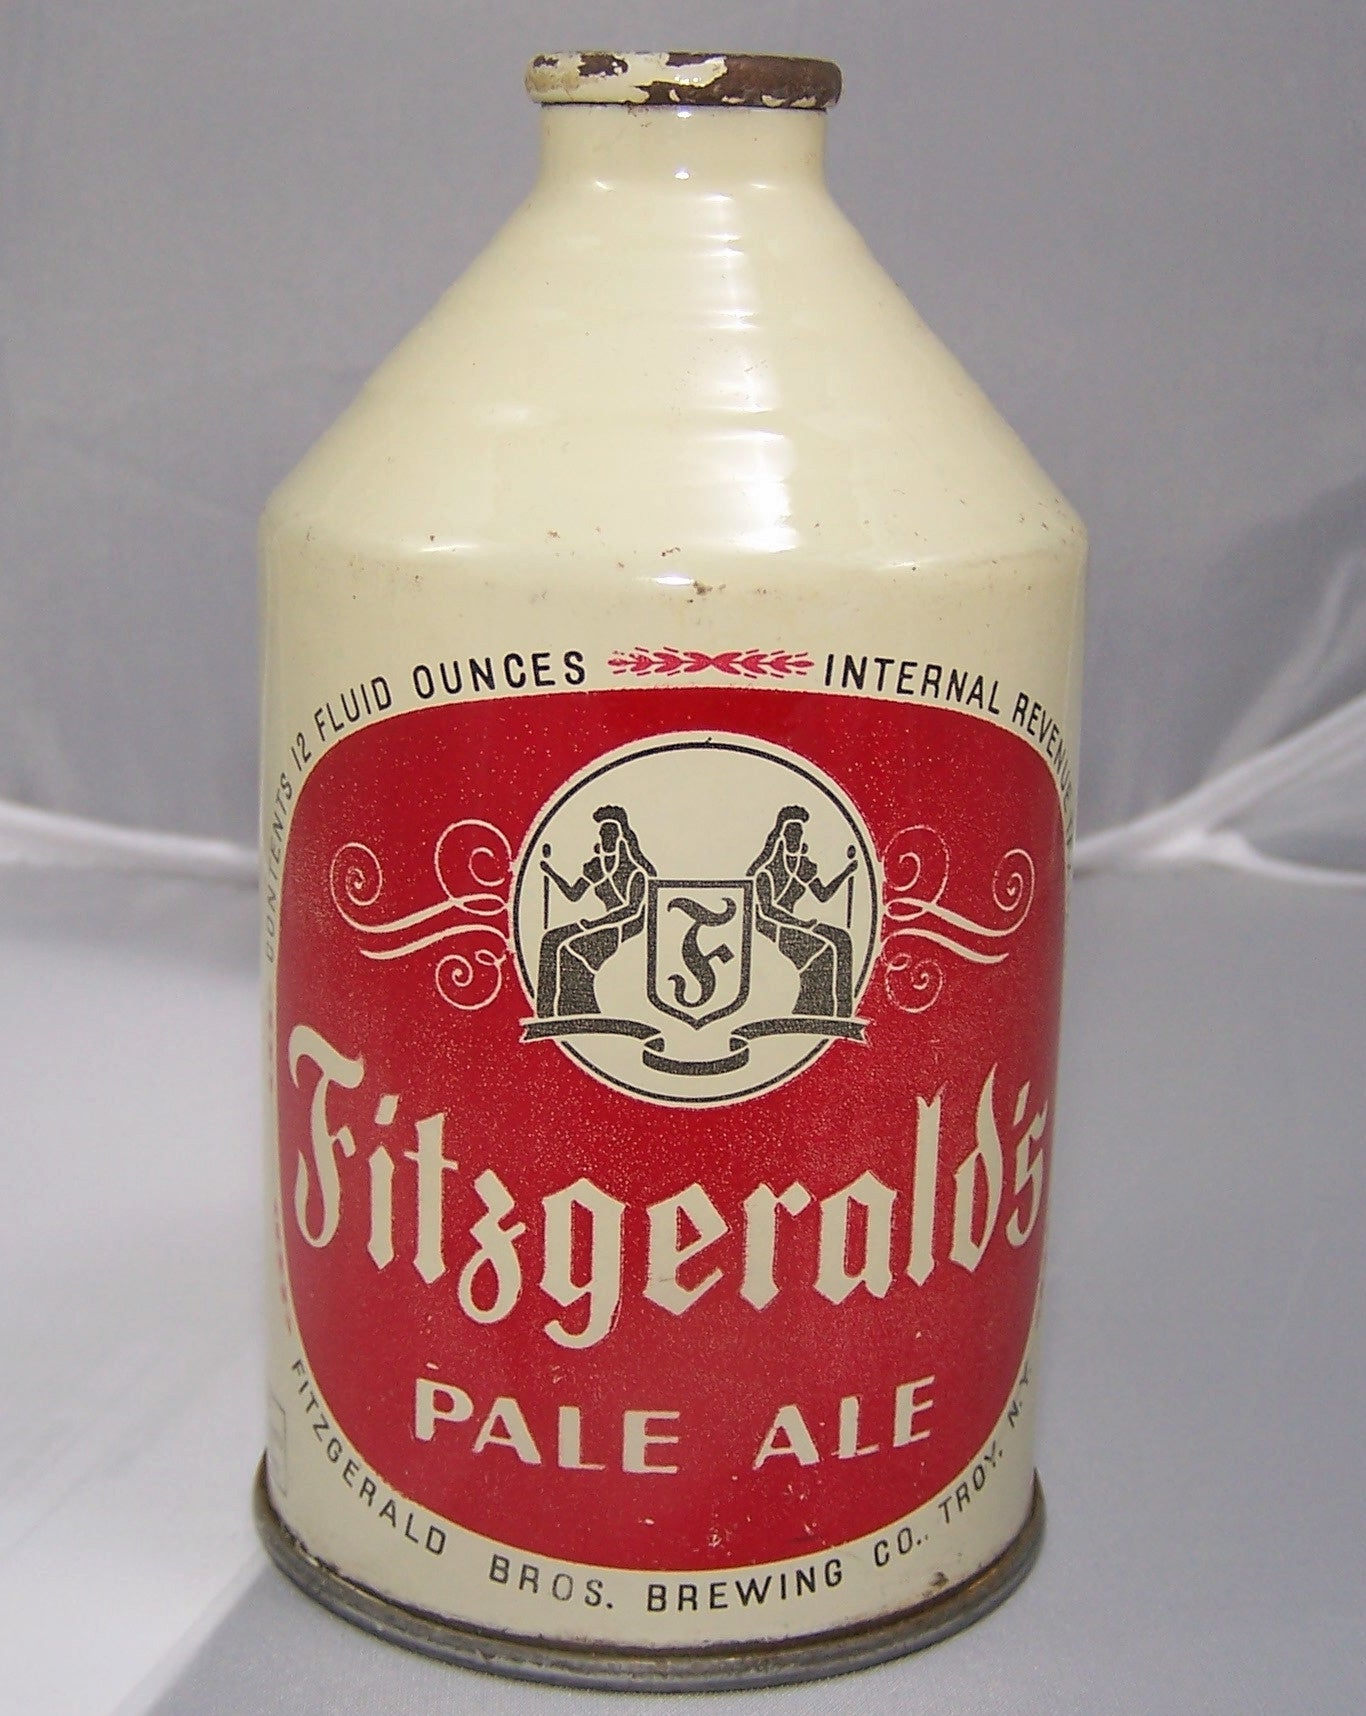 Fitzgerald's Pale Ale, USBC 193-32, Grade 1 to 1/1+ Sold on 07/21/17